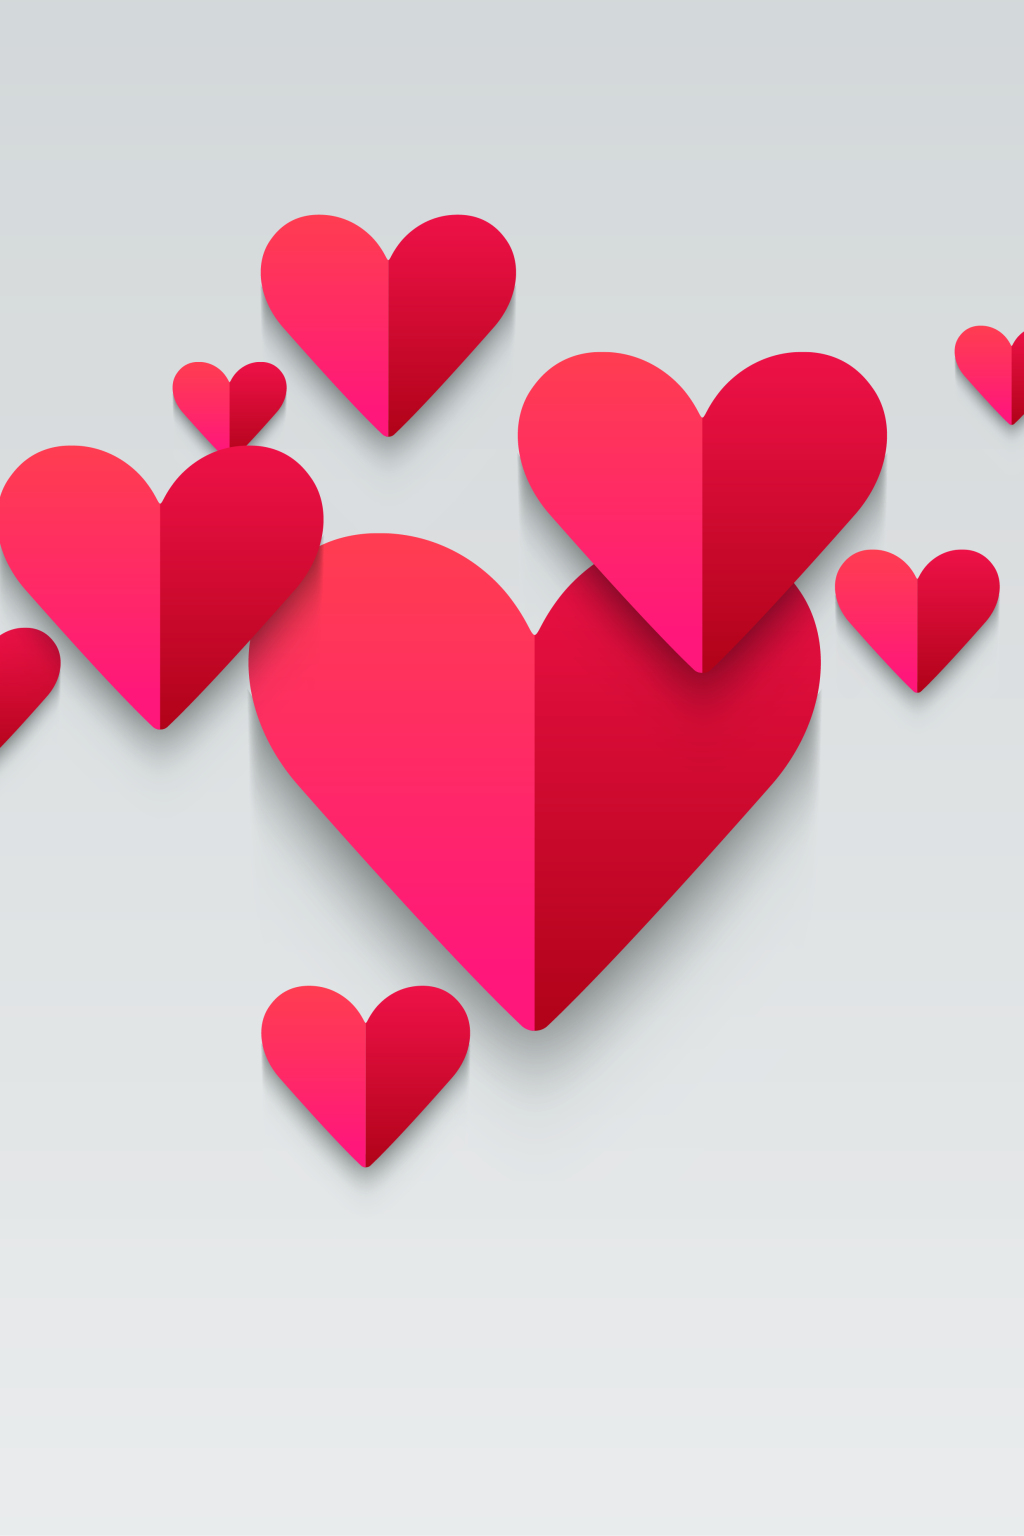 1024x1536 Vector Geometric Heart Shaped Love Flat Background Free Download